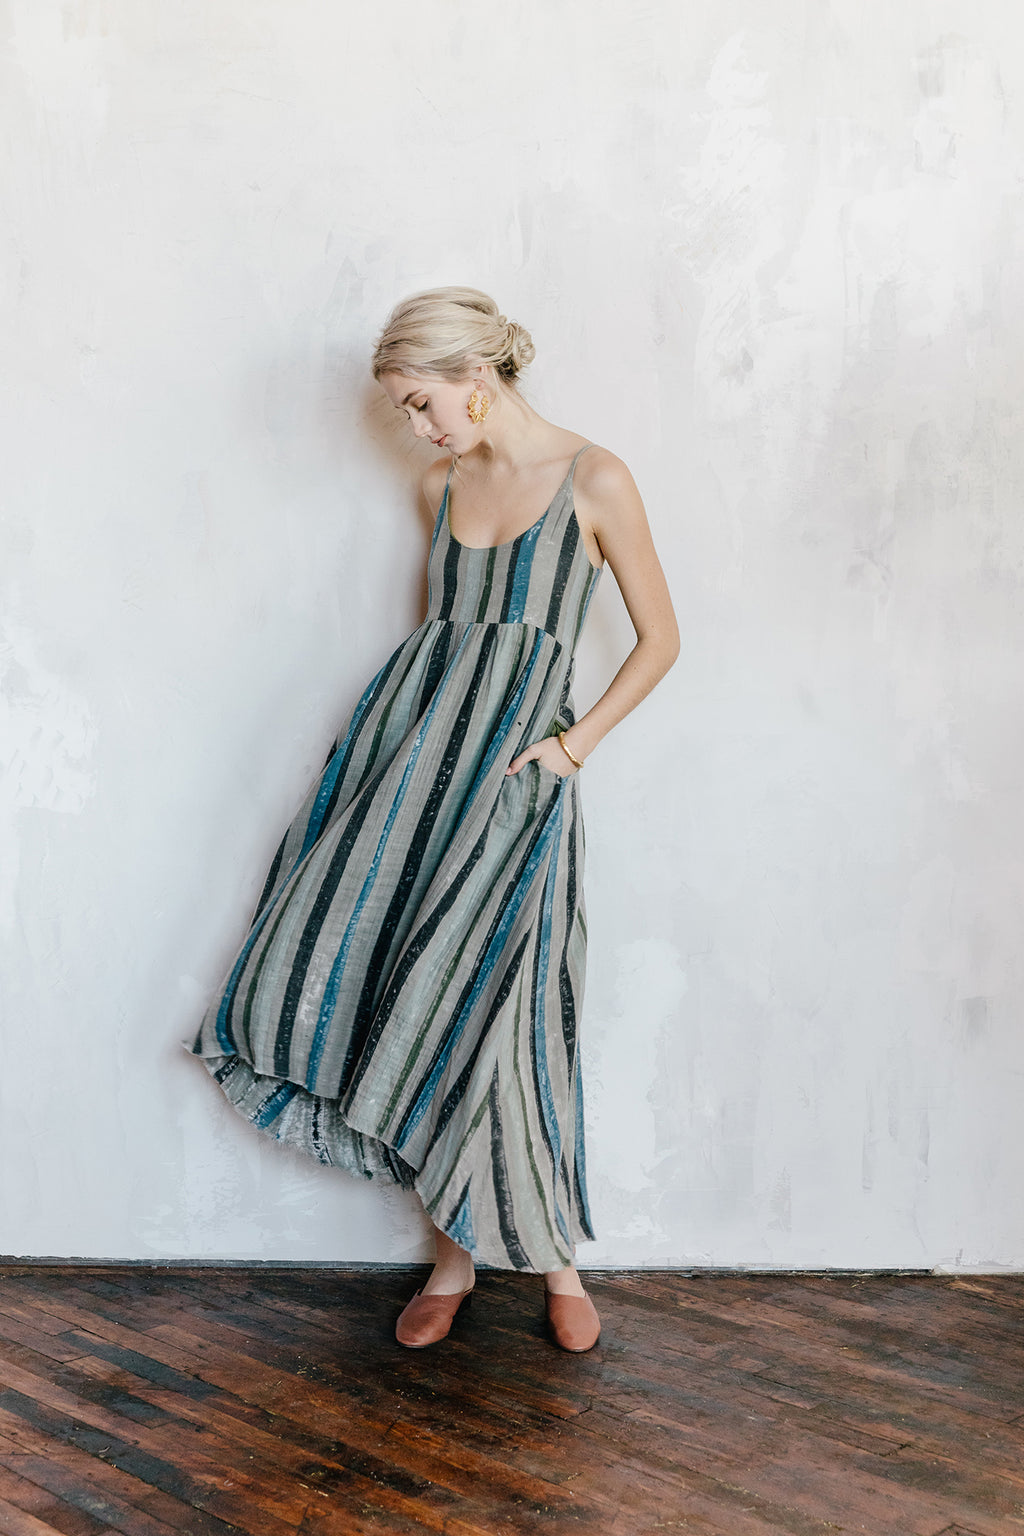 Model wearing a cotton gauze maxi dress in rose ash stripe. The dress cinches at the waist, has a smocked back and pockets.